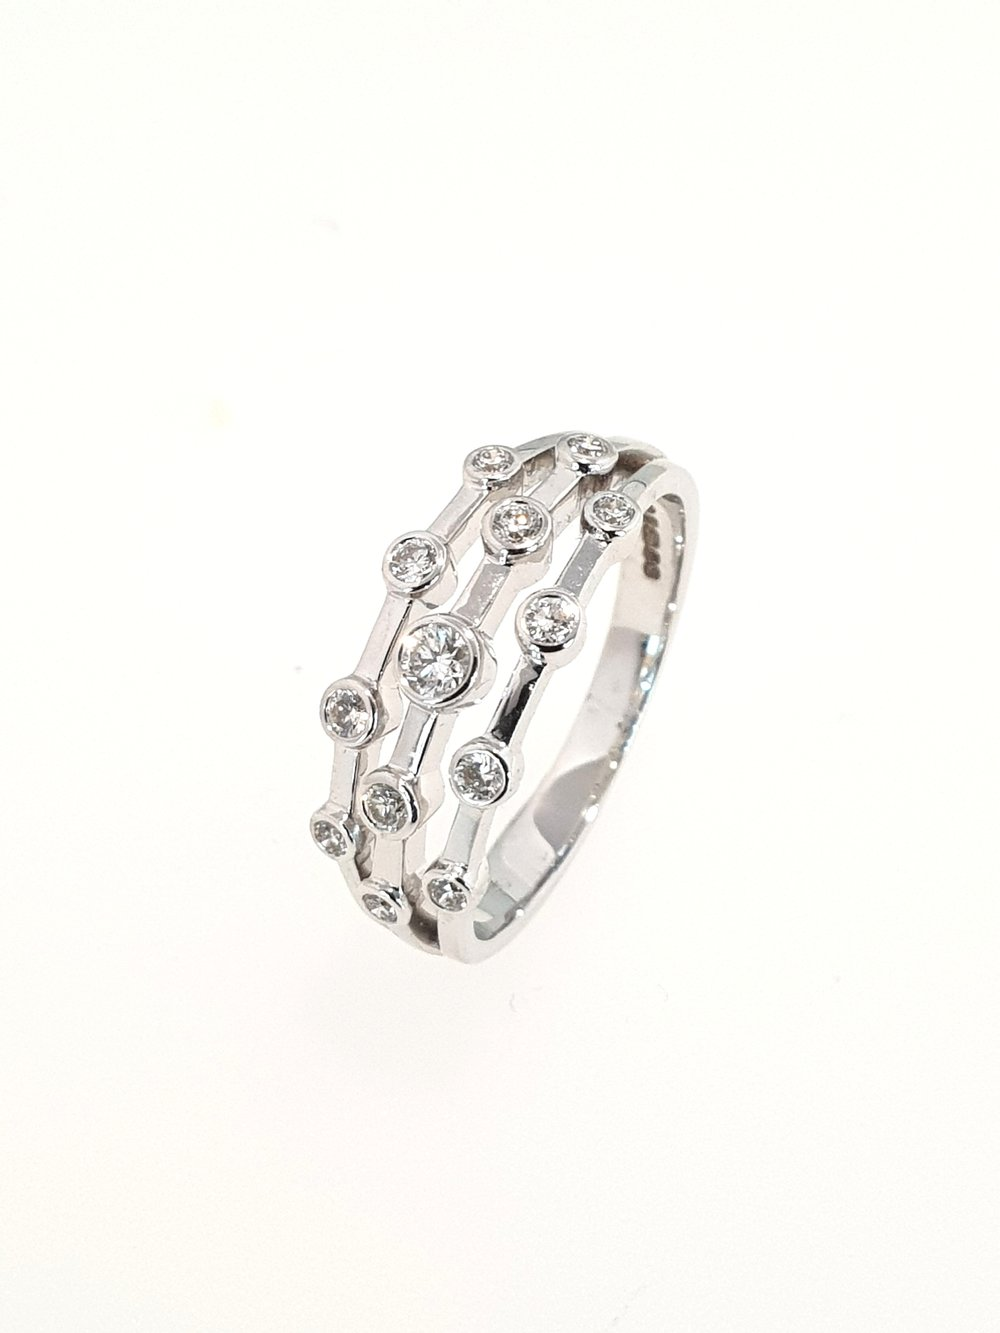 18ct White Gold 13 Stone Fancy Ring  .29ct, G, SI1  Stock Code: N8958  £1550